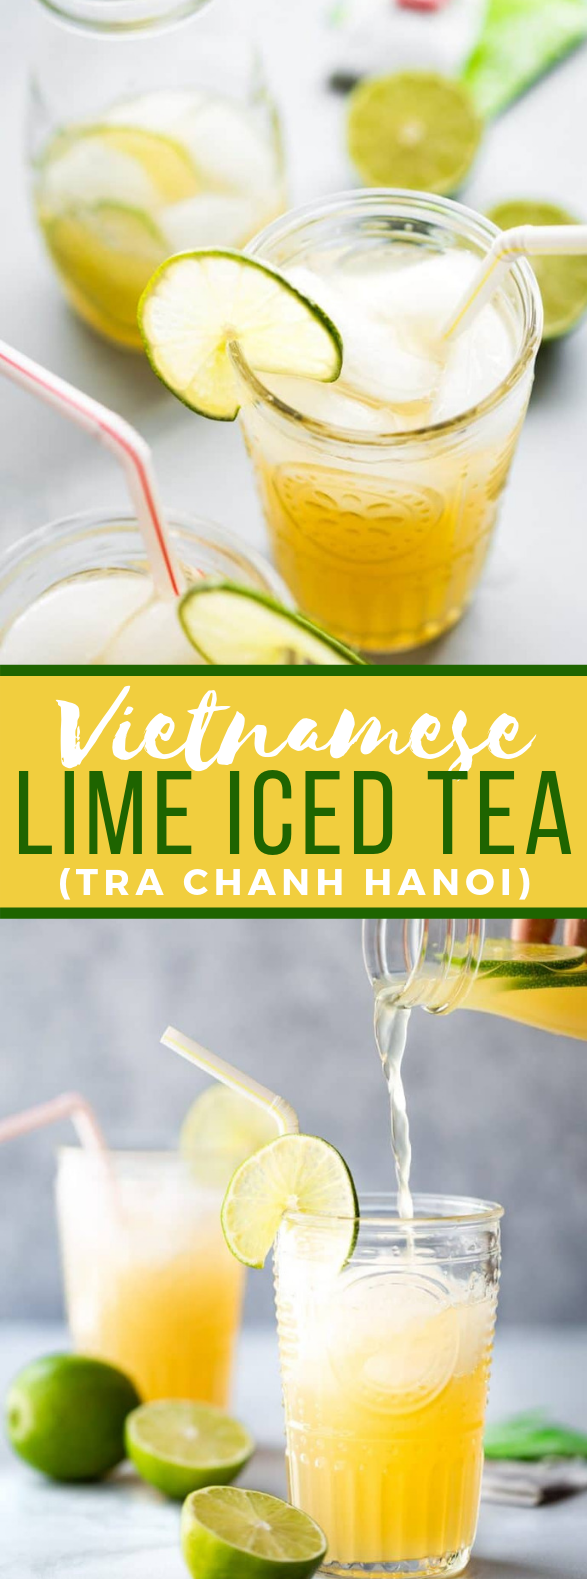 VIETNAMESE LIME ICED TEA (TRA CHANH HANOI) #drinks #refreshingdrink